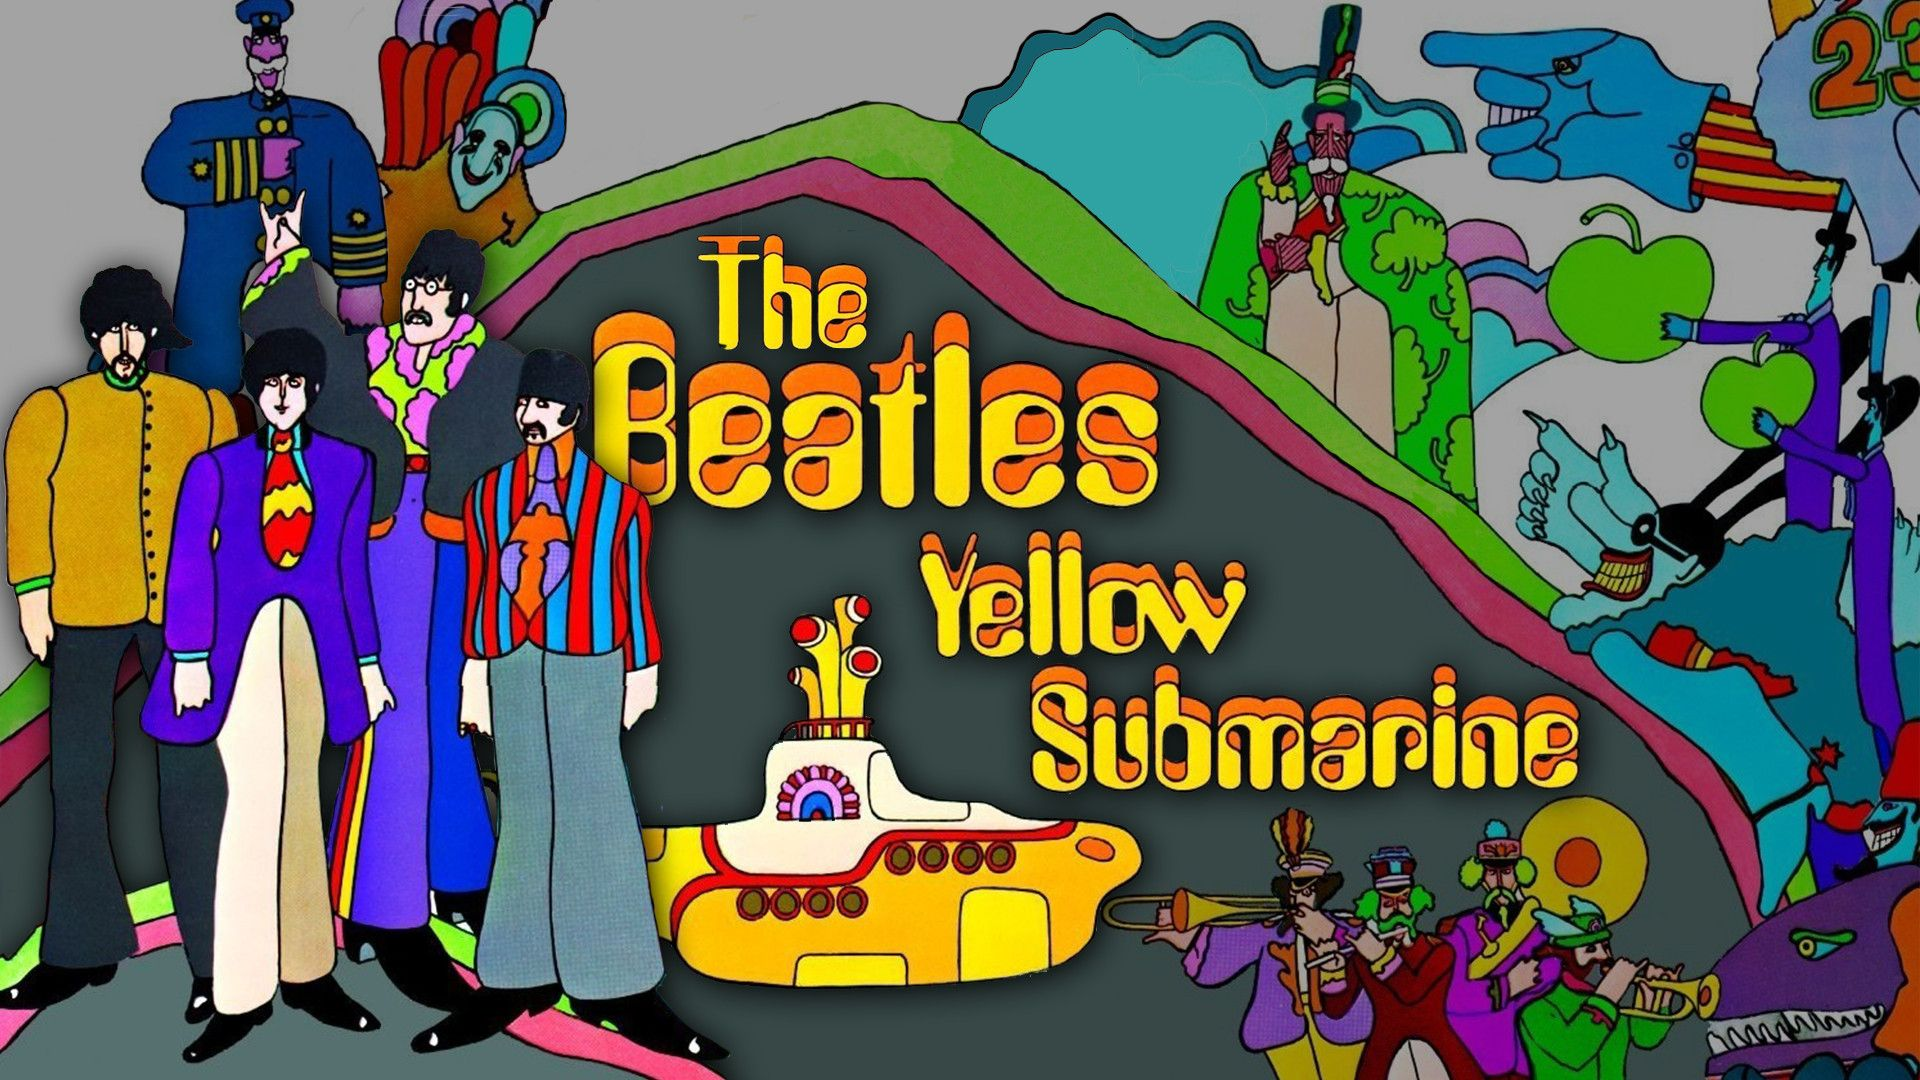 Обои The beatles, sgt. peppers lonely hearts club band, yellow submarine. Музыка foto 10